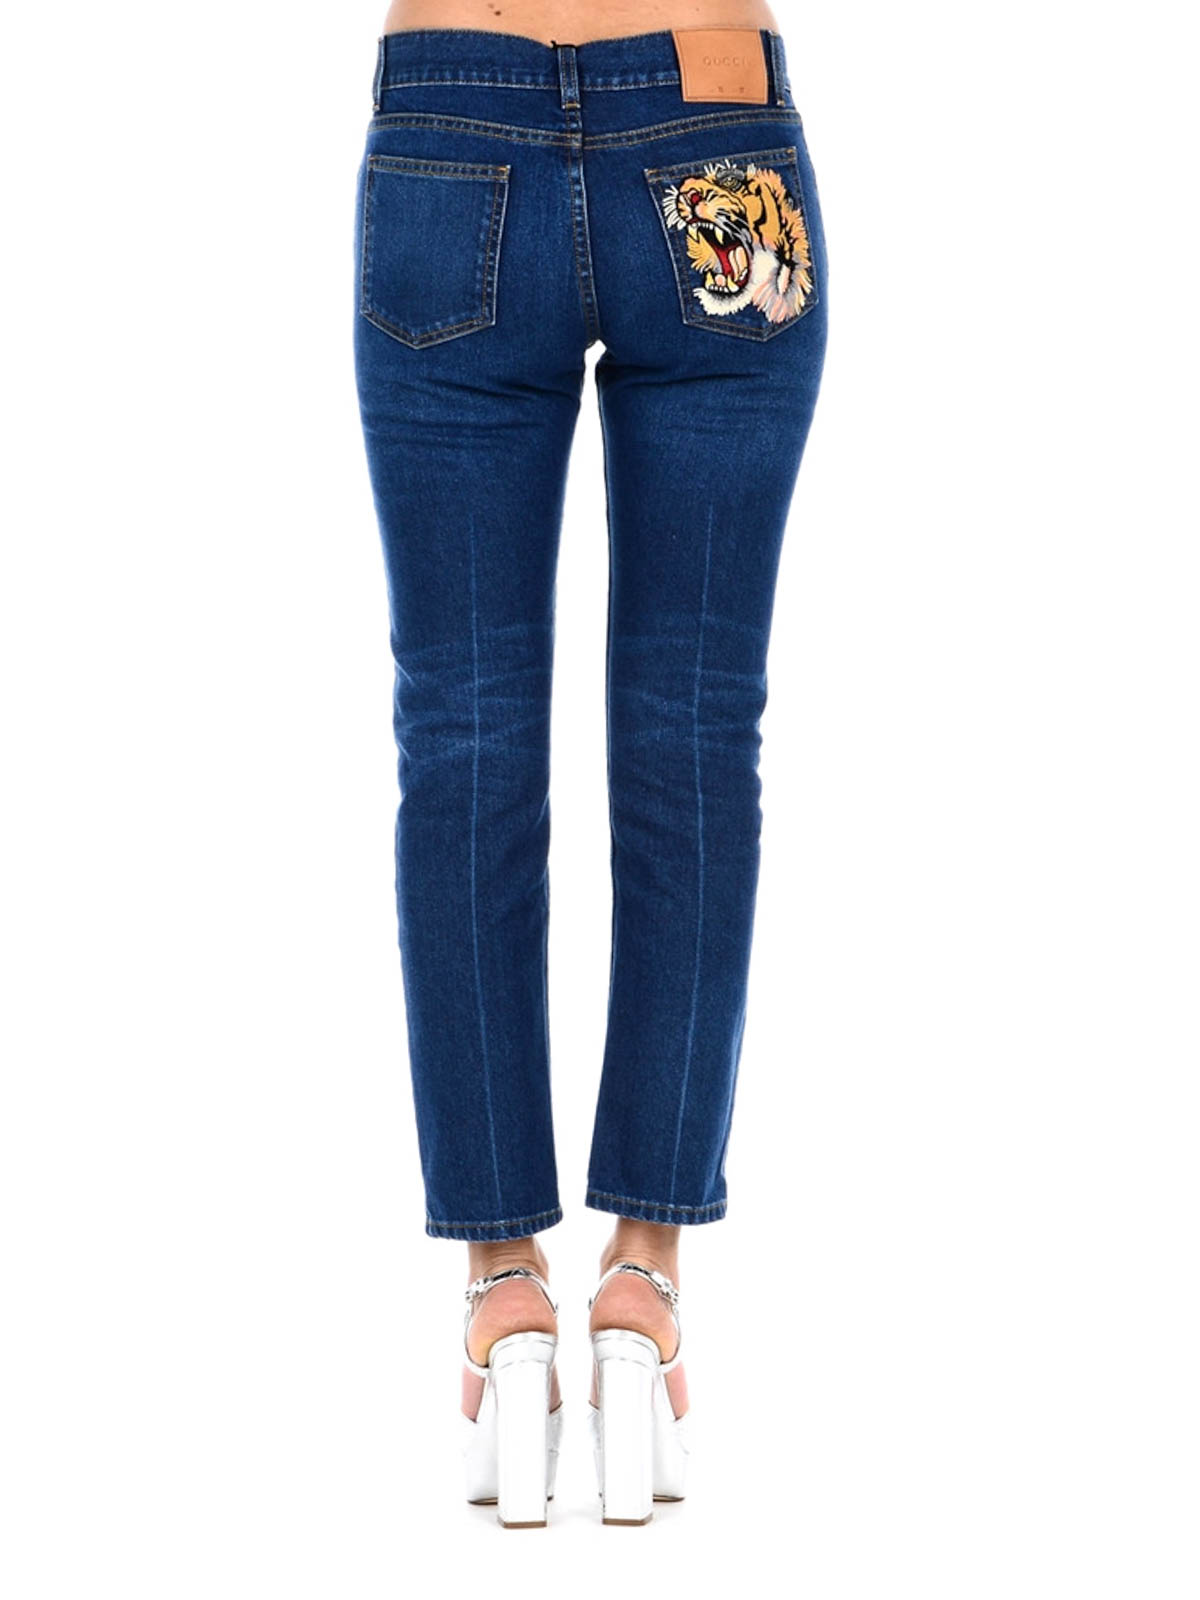 Gucci Flower And Tiger Patch Jeans Straight Leg Jeans